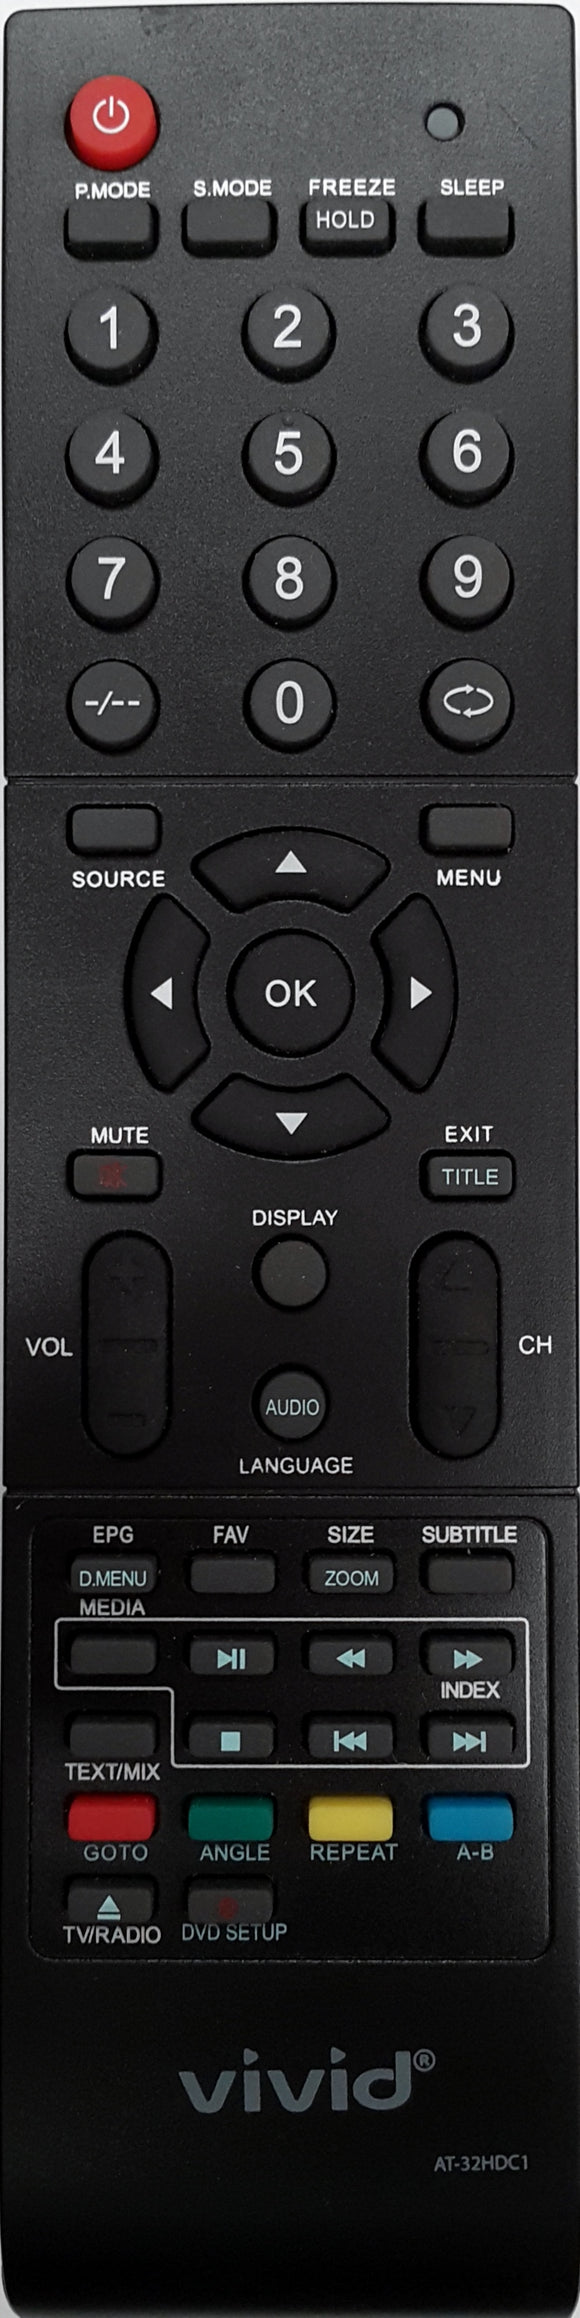 ORIGINAL VIVID REMOTE CONTROL - AT32HDC1 LCD TV - Remote Control Warehouse